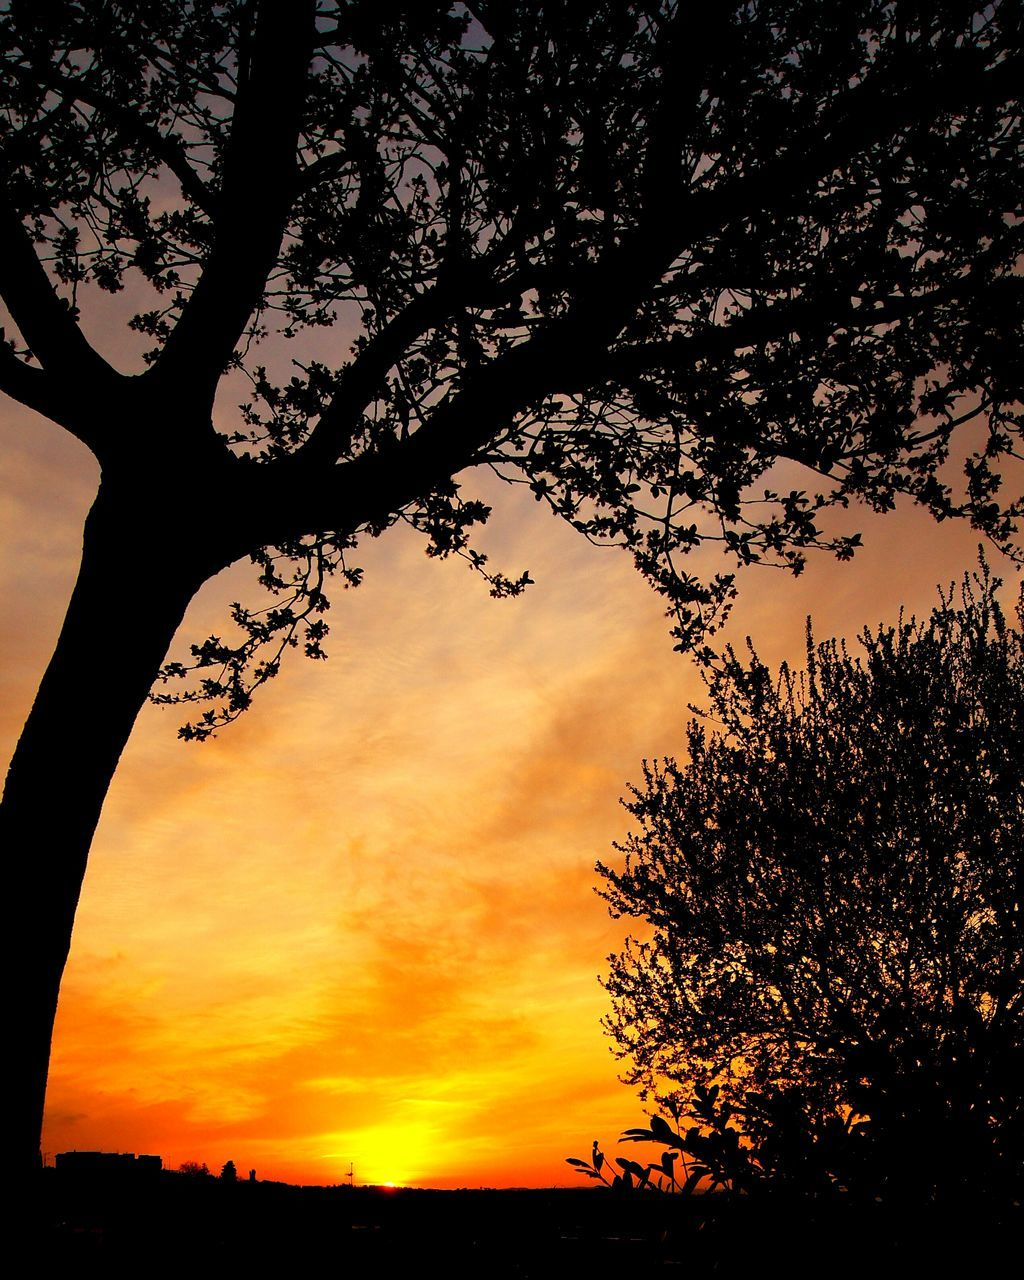 tree, sunset, silhouette, beauty in nature, nature, scenics, sky, tranquil scene, tranquility, no people, growth, outdoors, branch, cloud - sky, low angle view, tree trunk, day